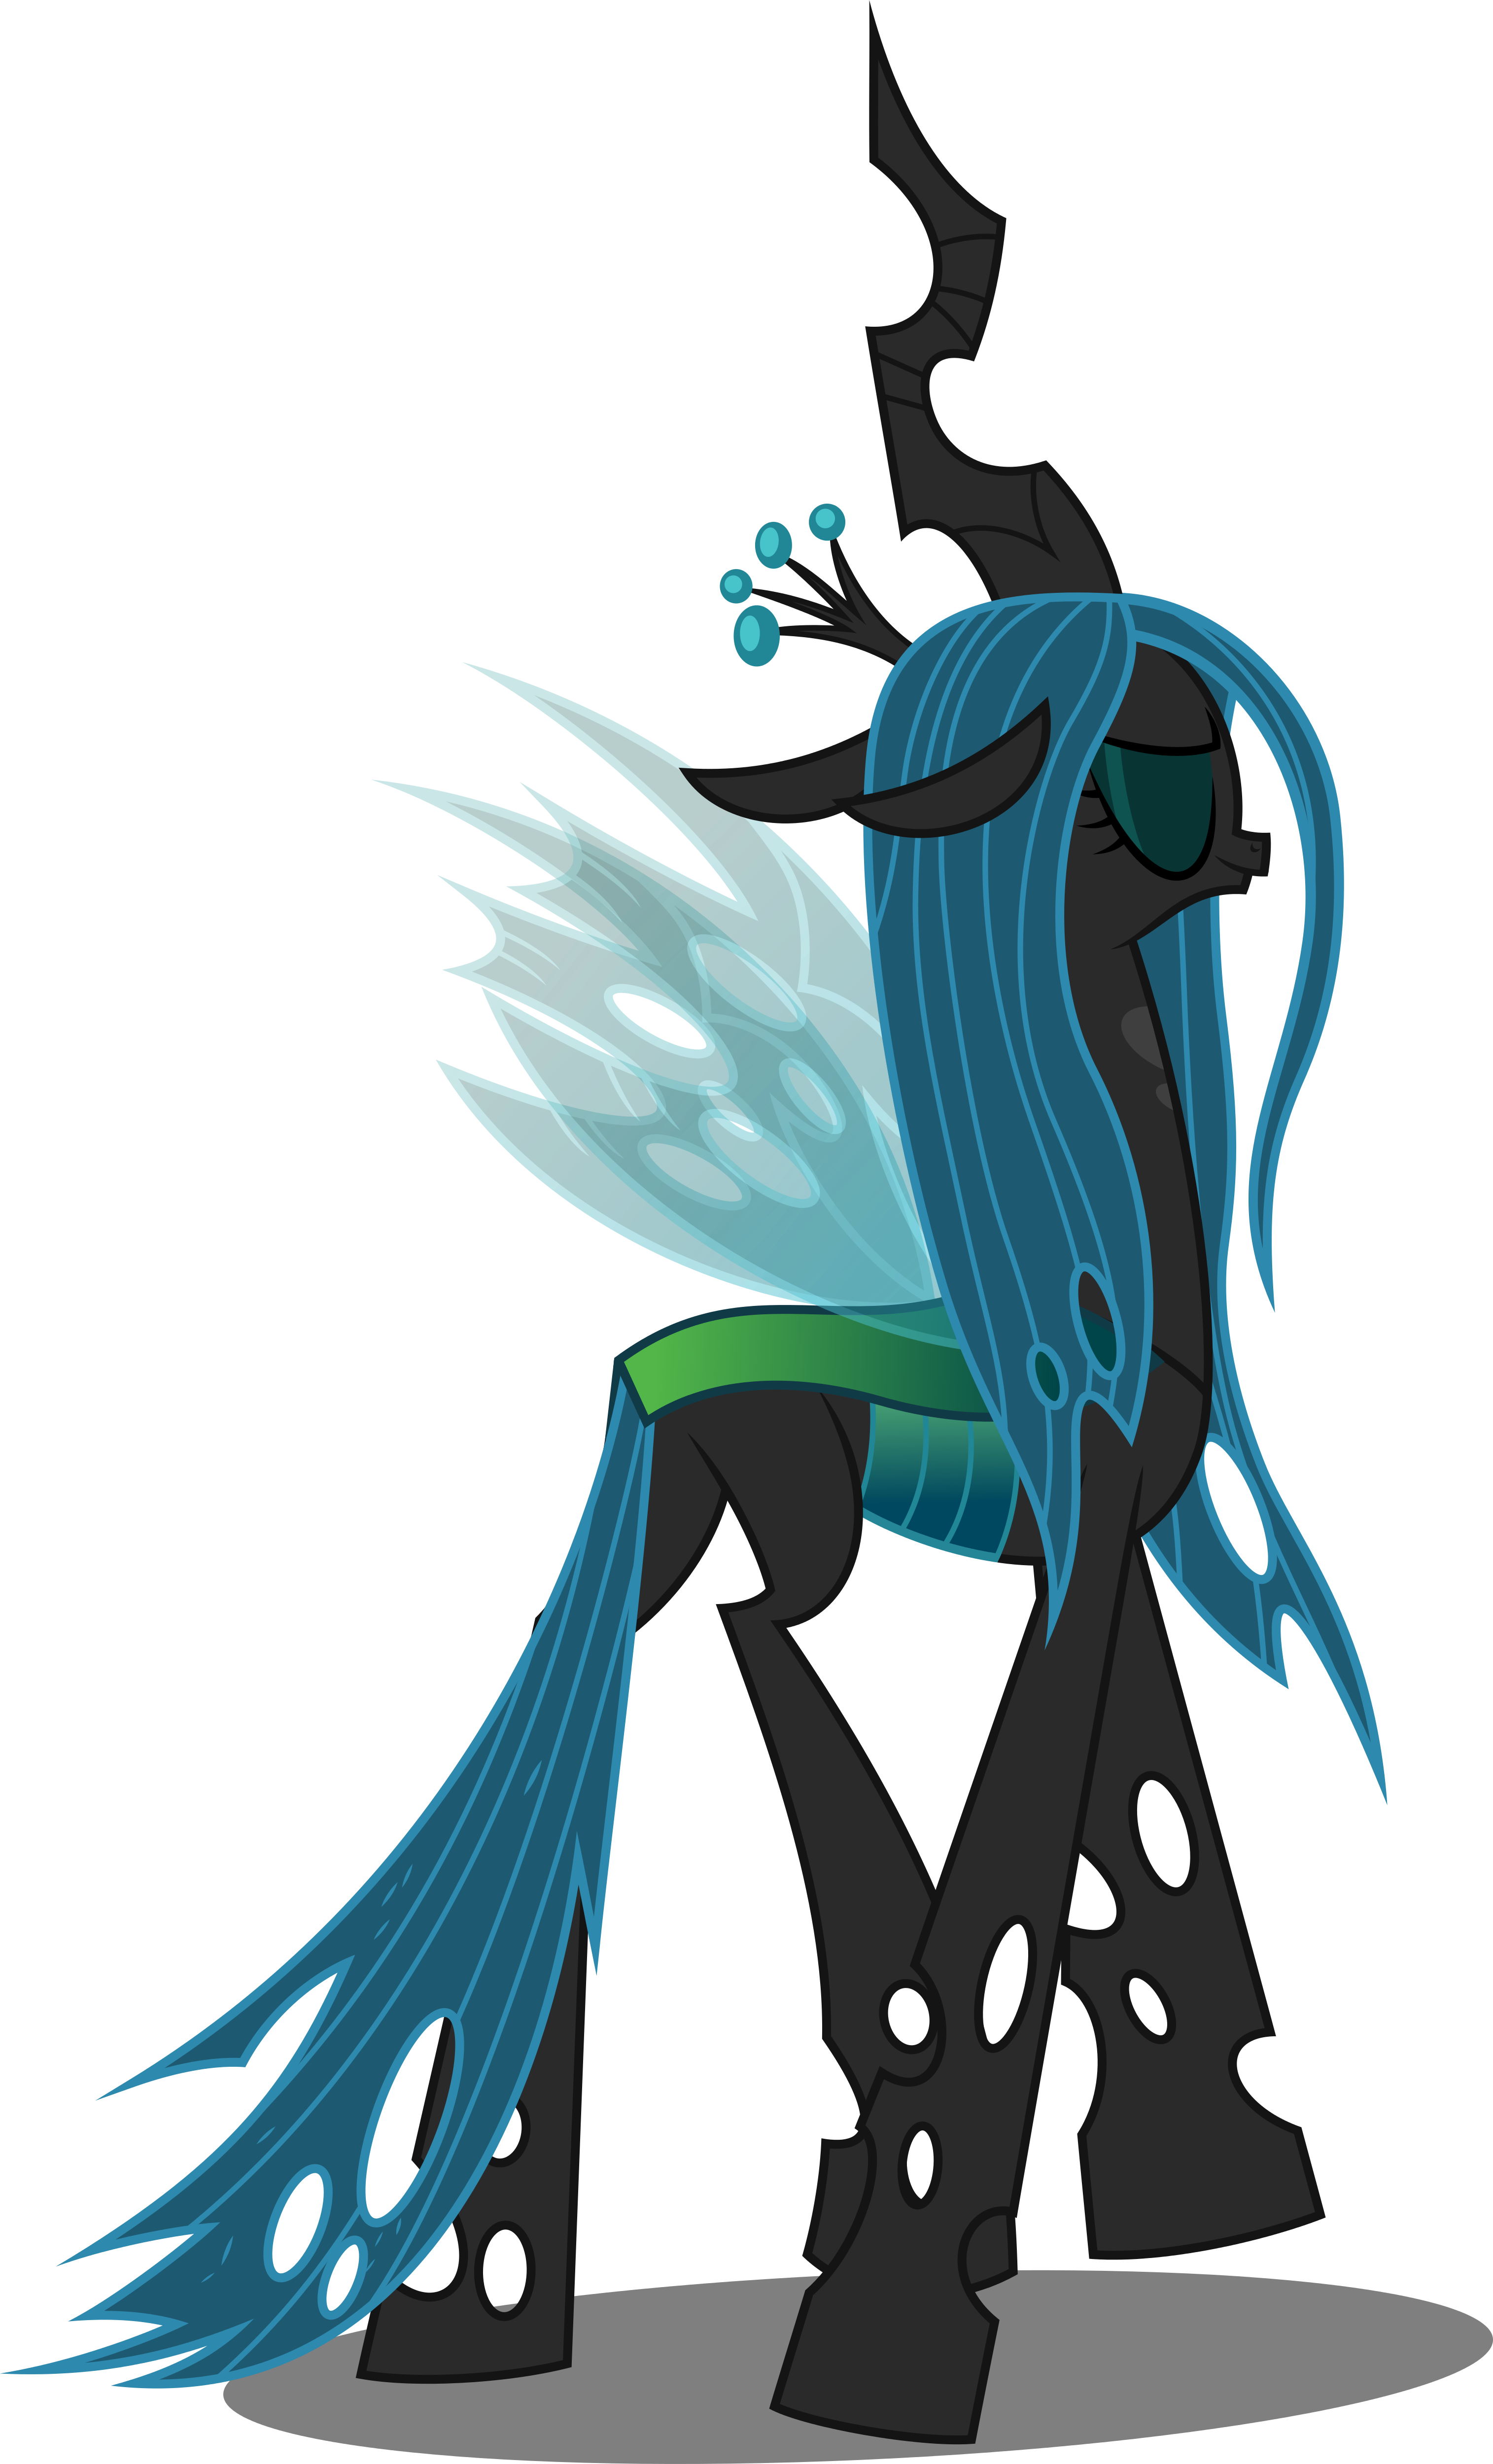 Vector #622 - Queen Chrysalis #2 by DashieSparkle on ...